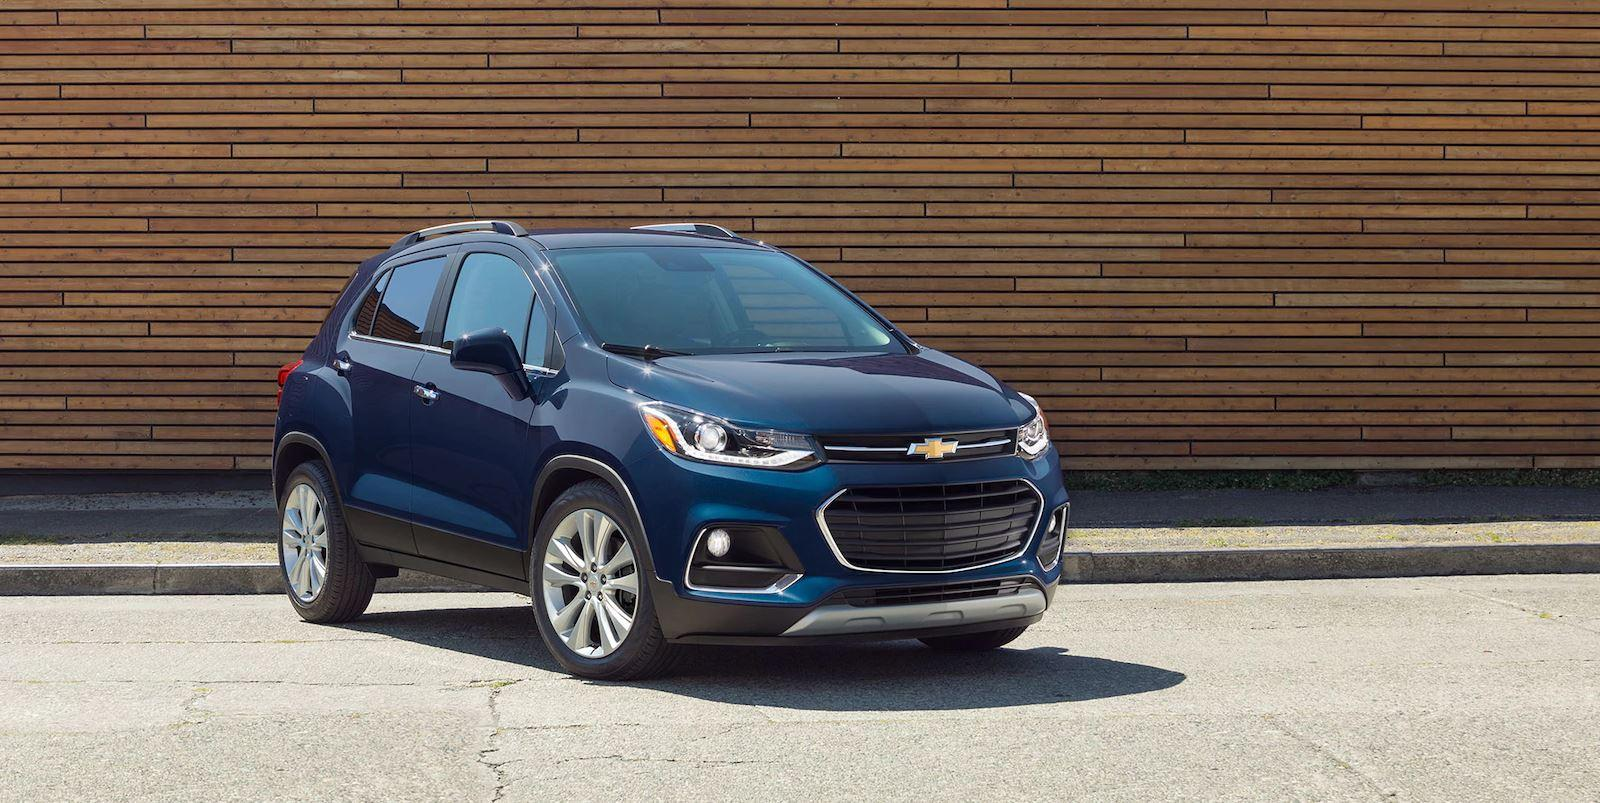 Beautiful Explore The Fuel Efficient U0026 Stylish Chevrolet Trax